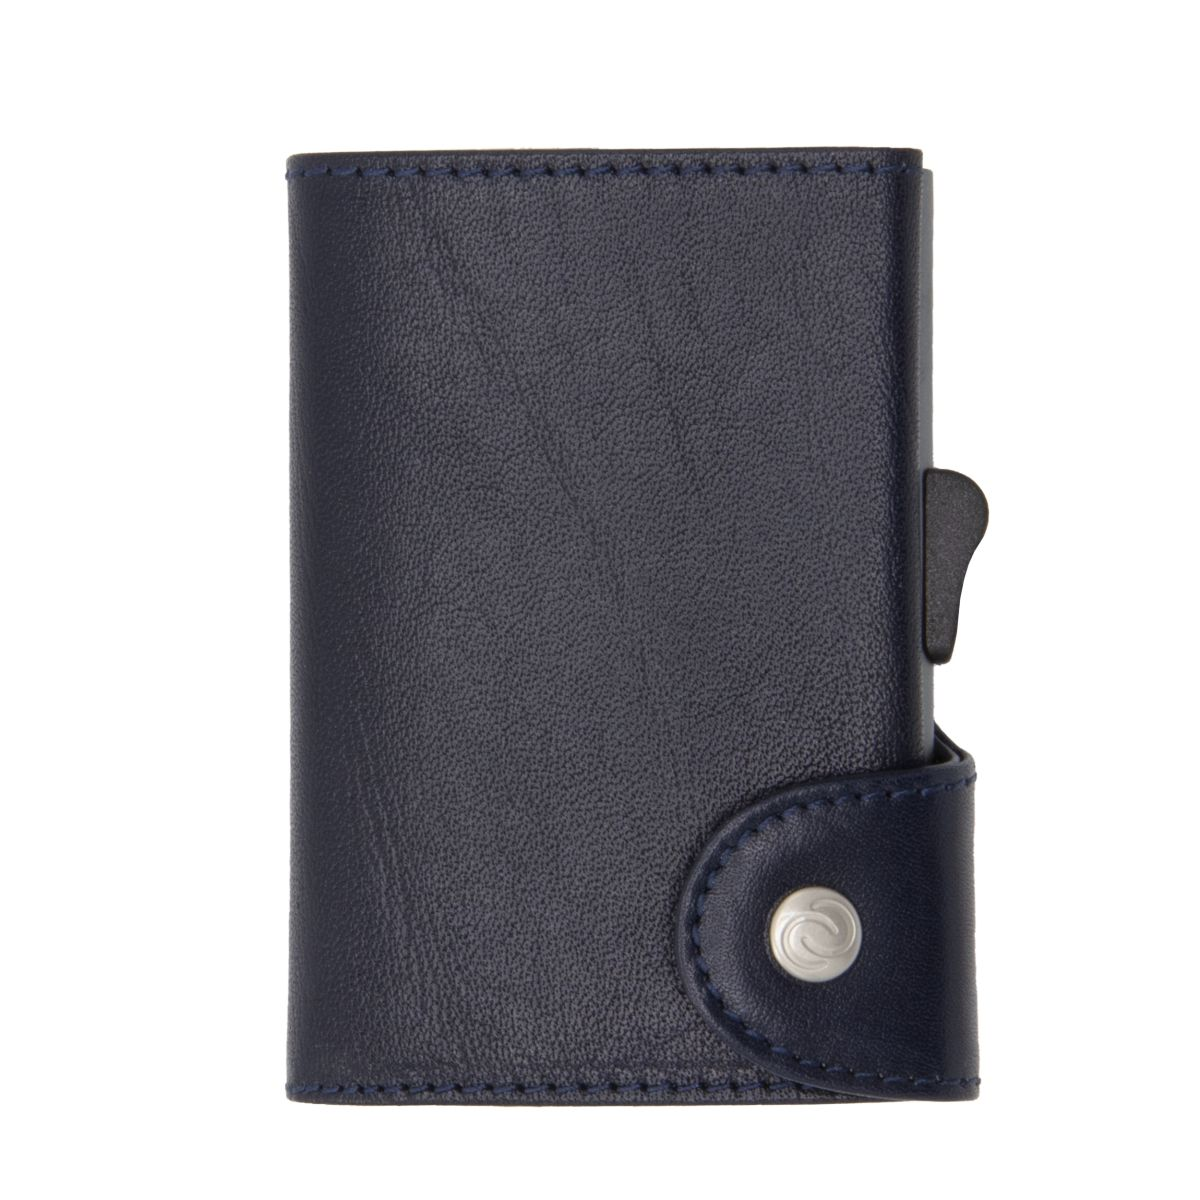 XL Aluminum Wallet with Vegetable Genuine Leather - Blue Montana